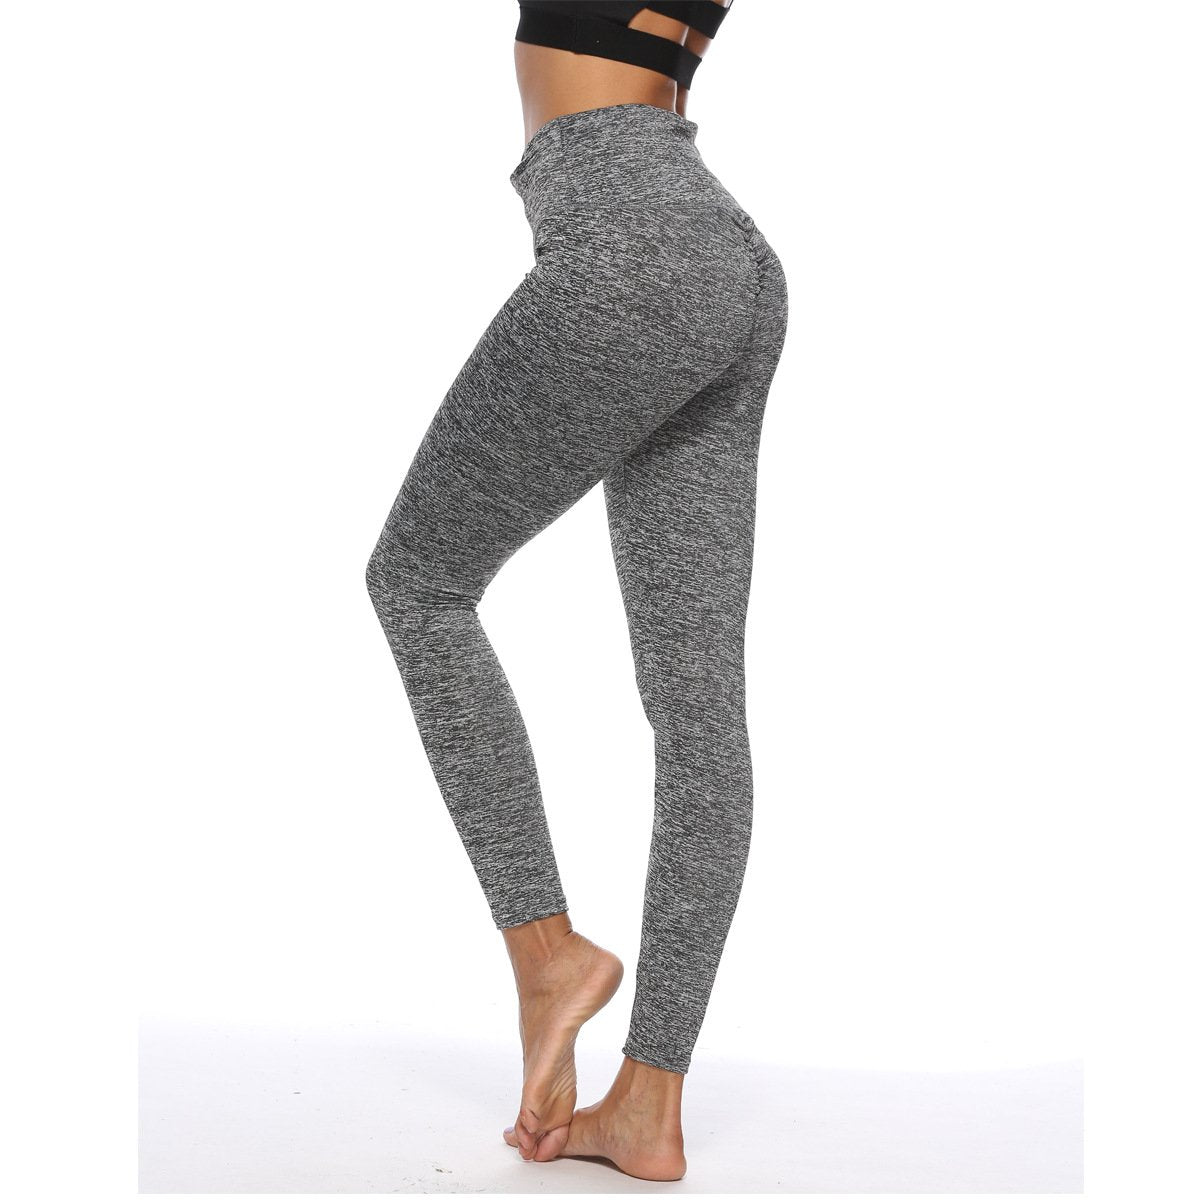 ad7addf6006a5 Push Up Leggings – LuckyGiftToday